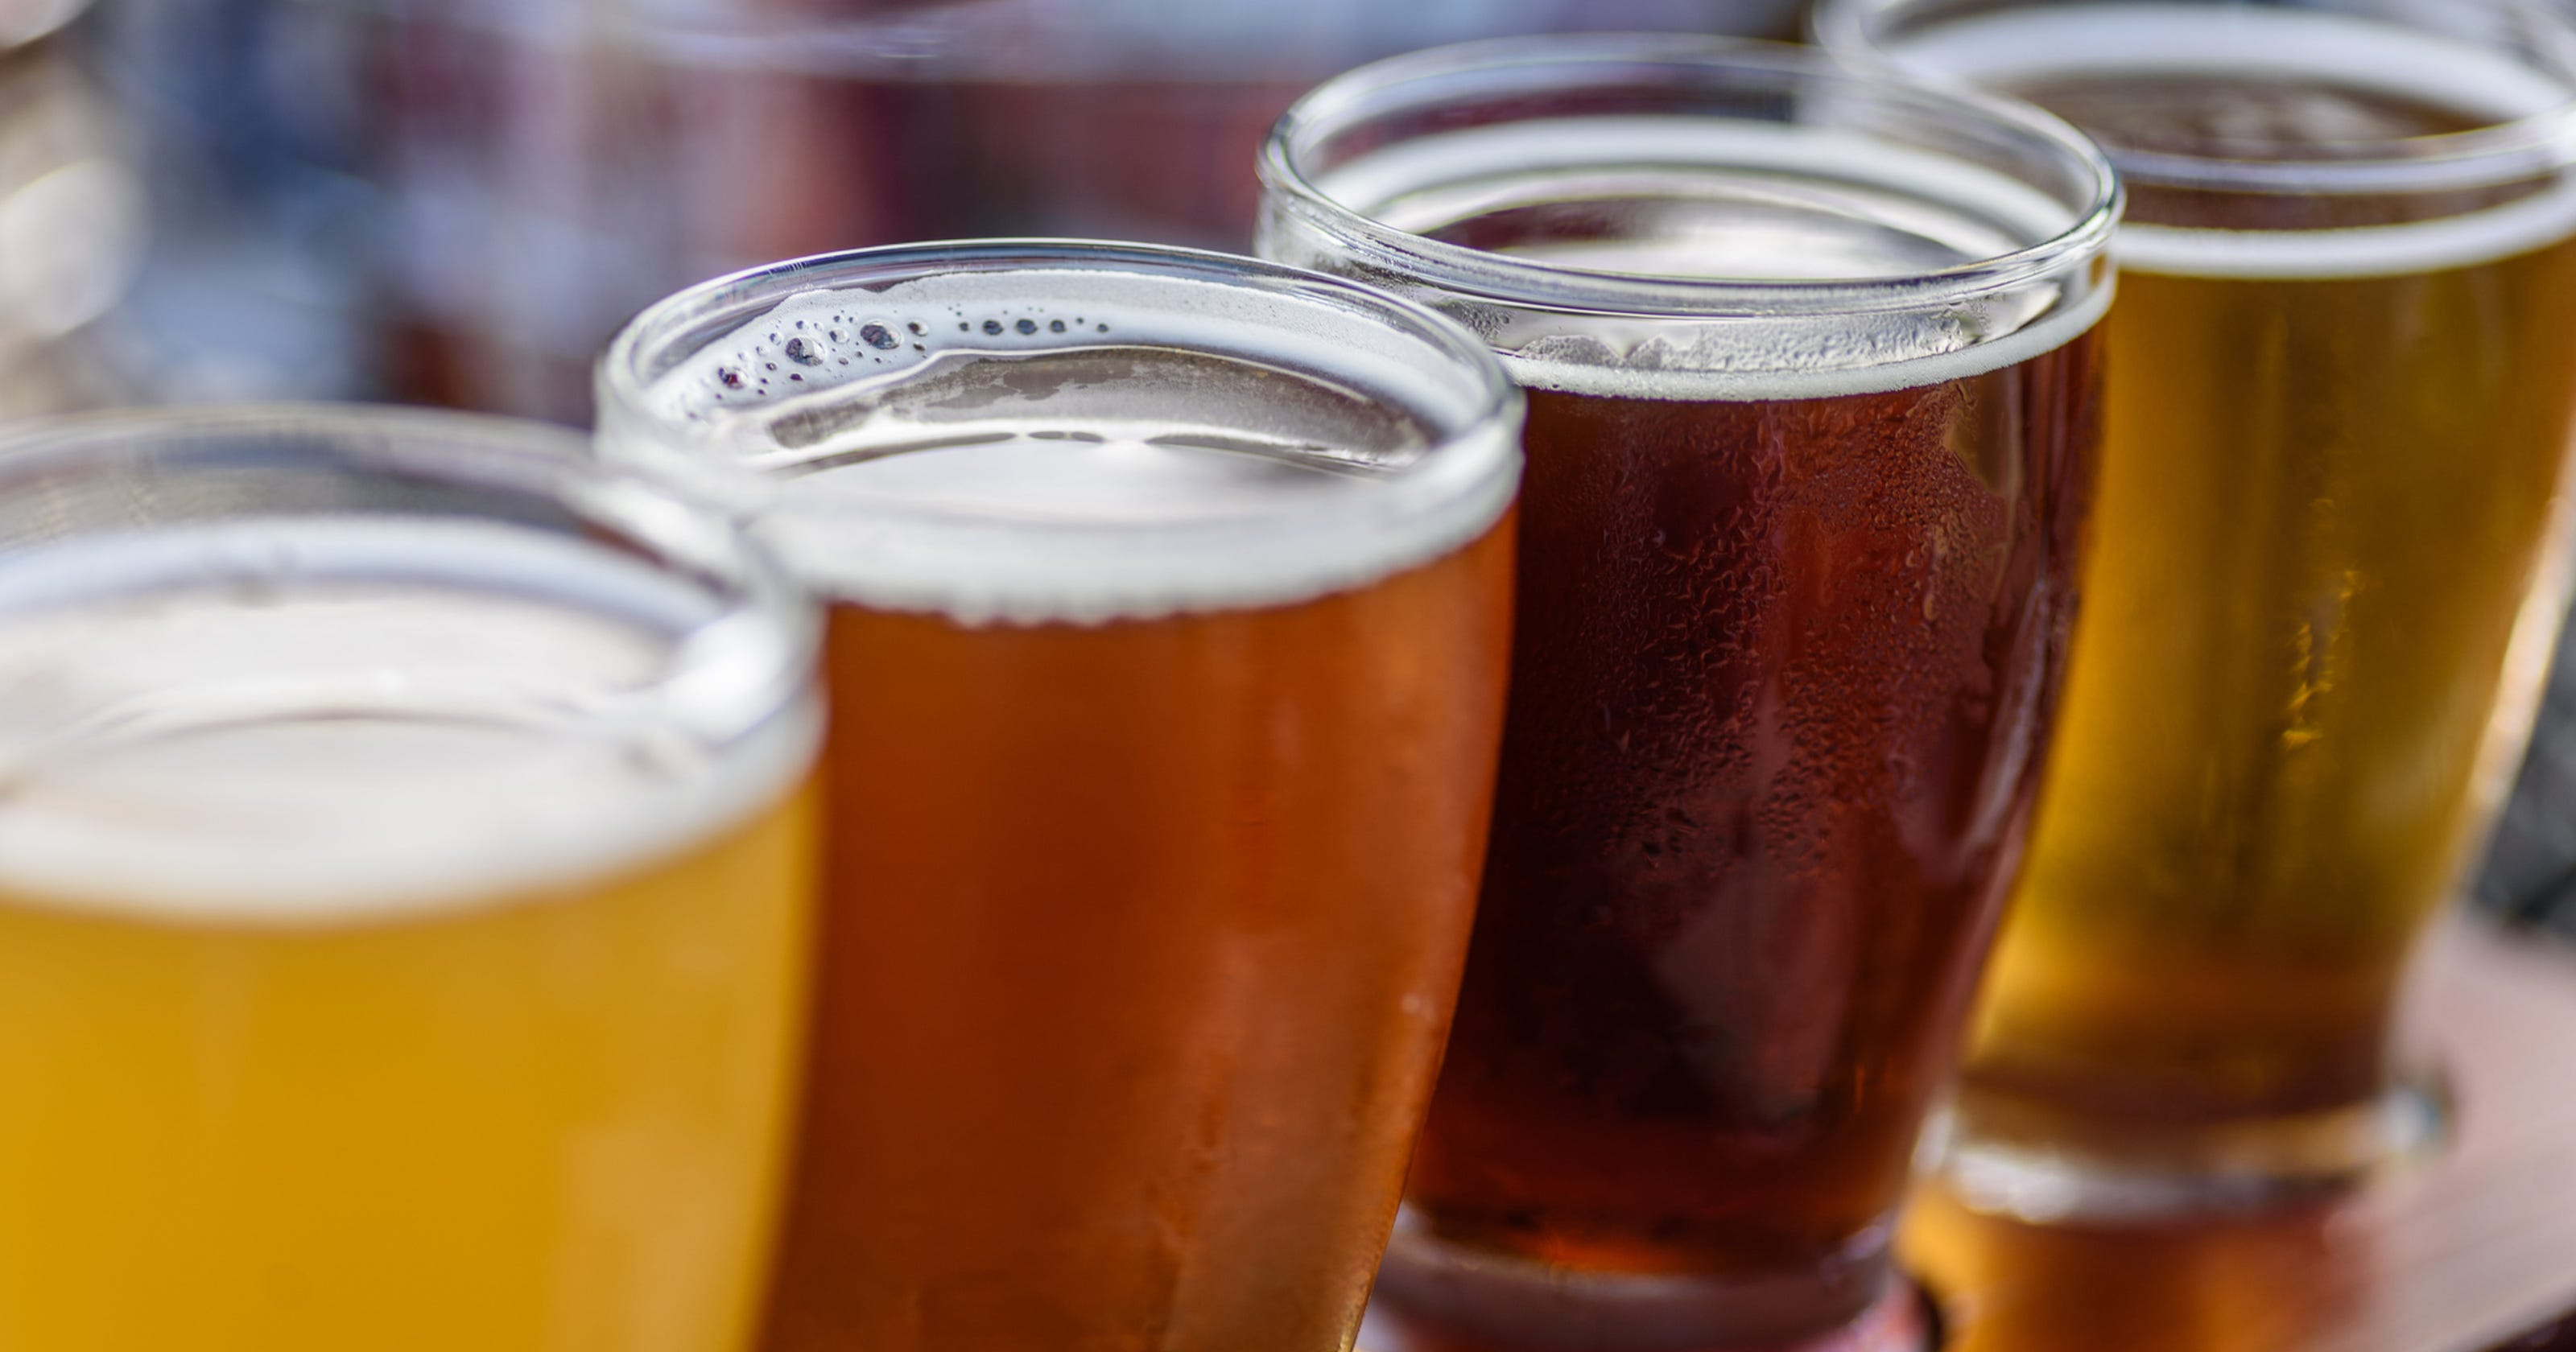 Most expensive beer? Man accidentally charged $68,000